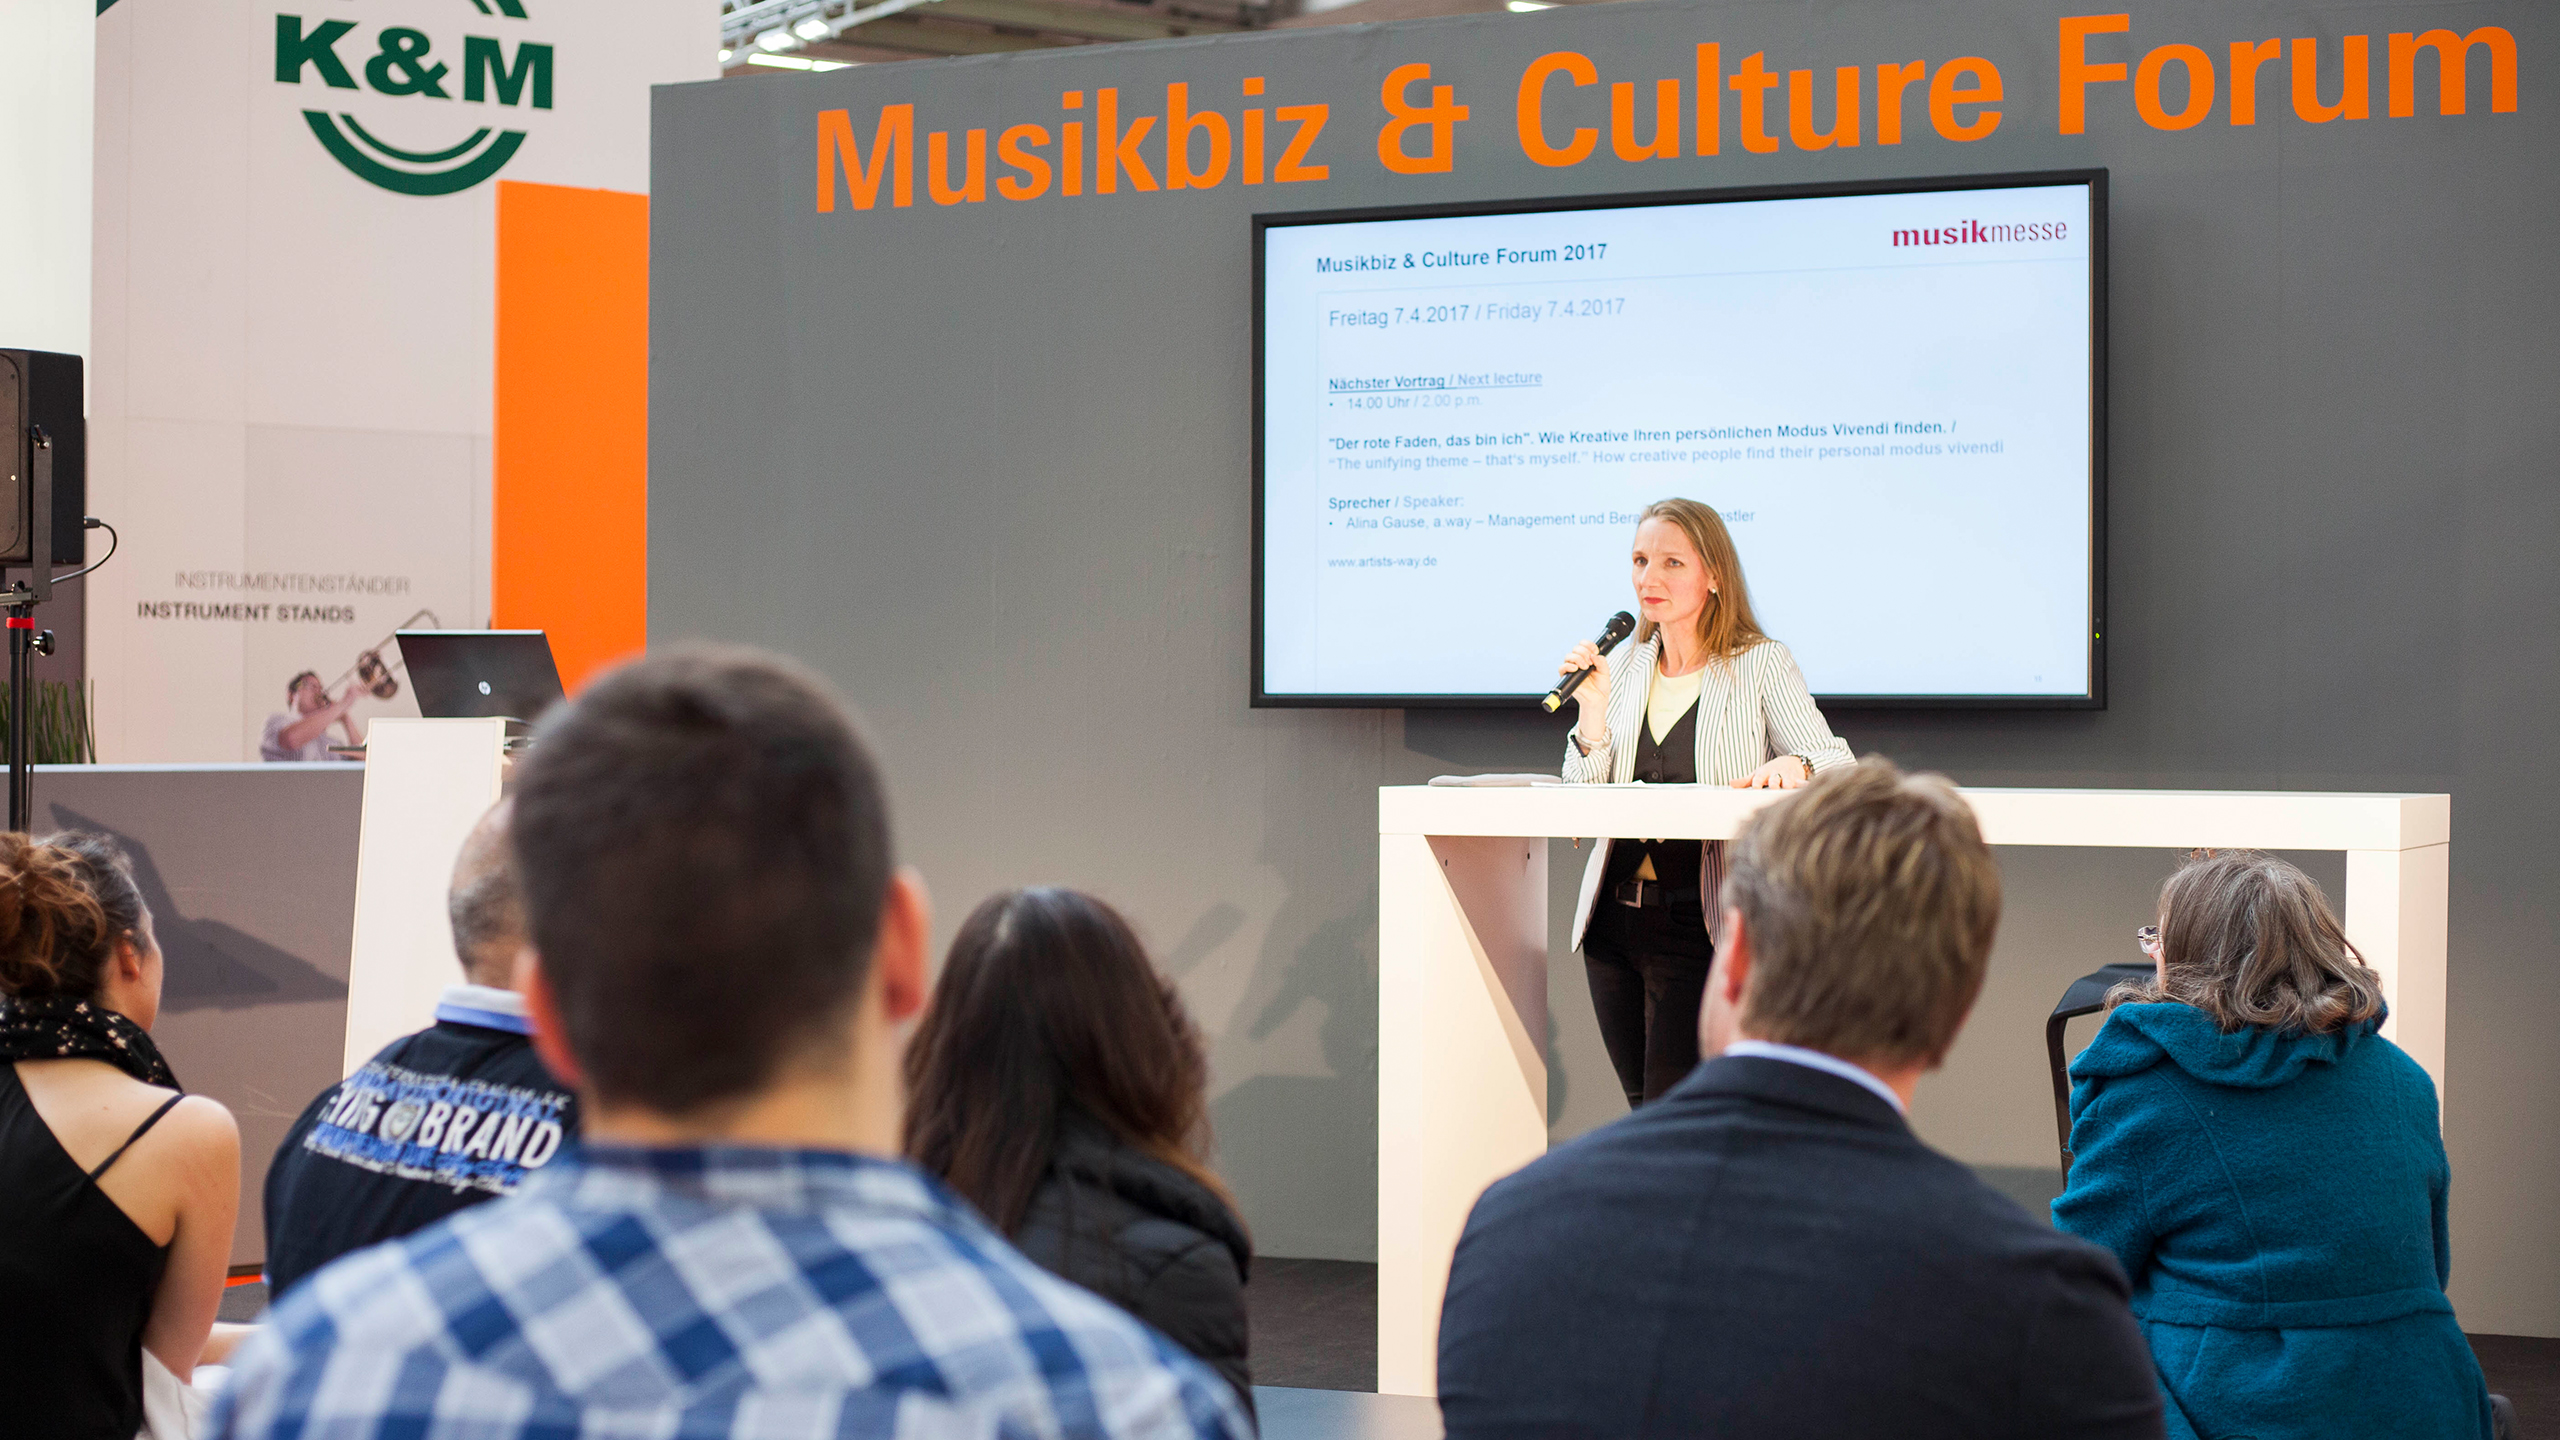 lecture at the Musicbiz & Culture Forum